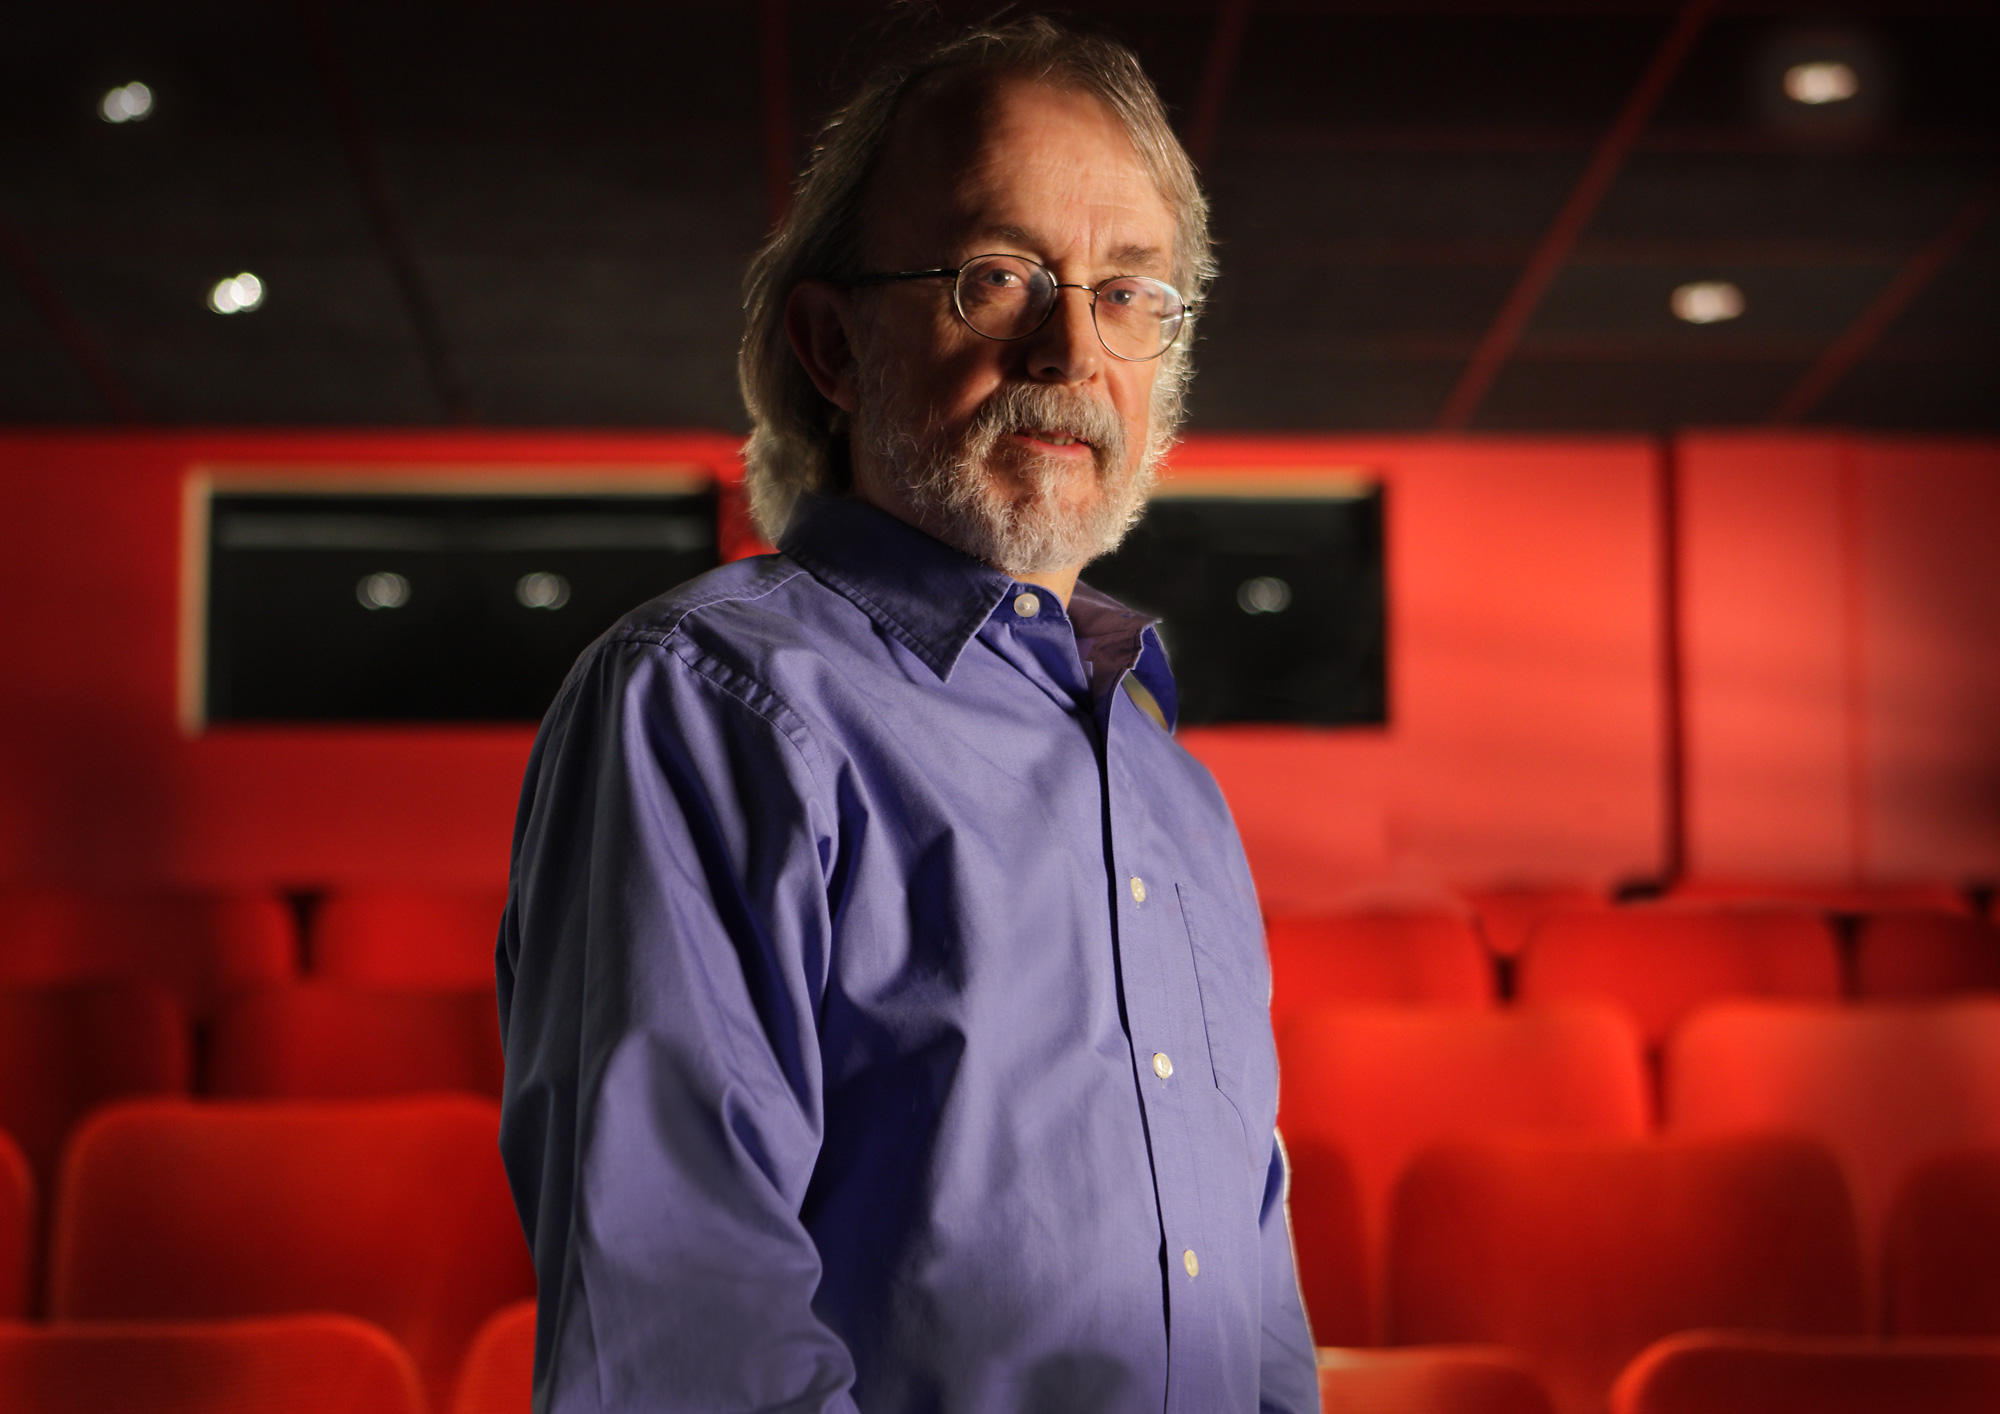 Photograph of Peter Lord standing in a cinema screen room